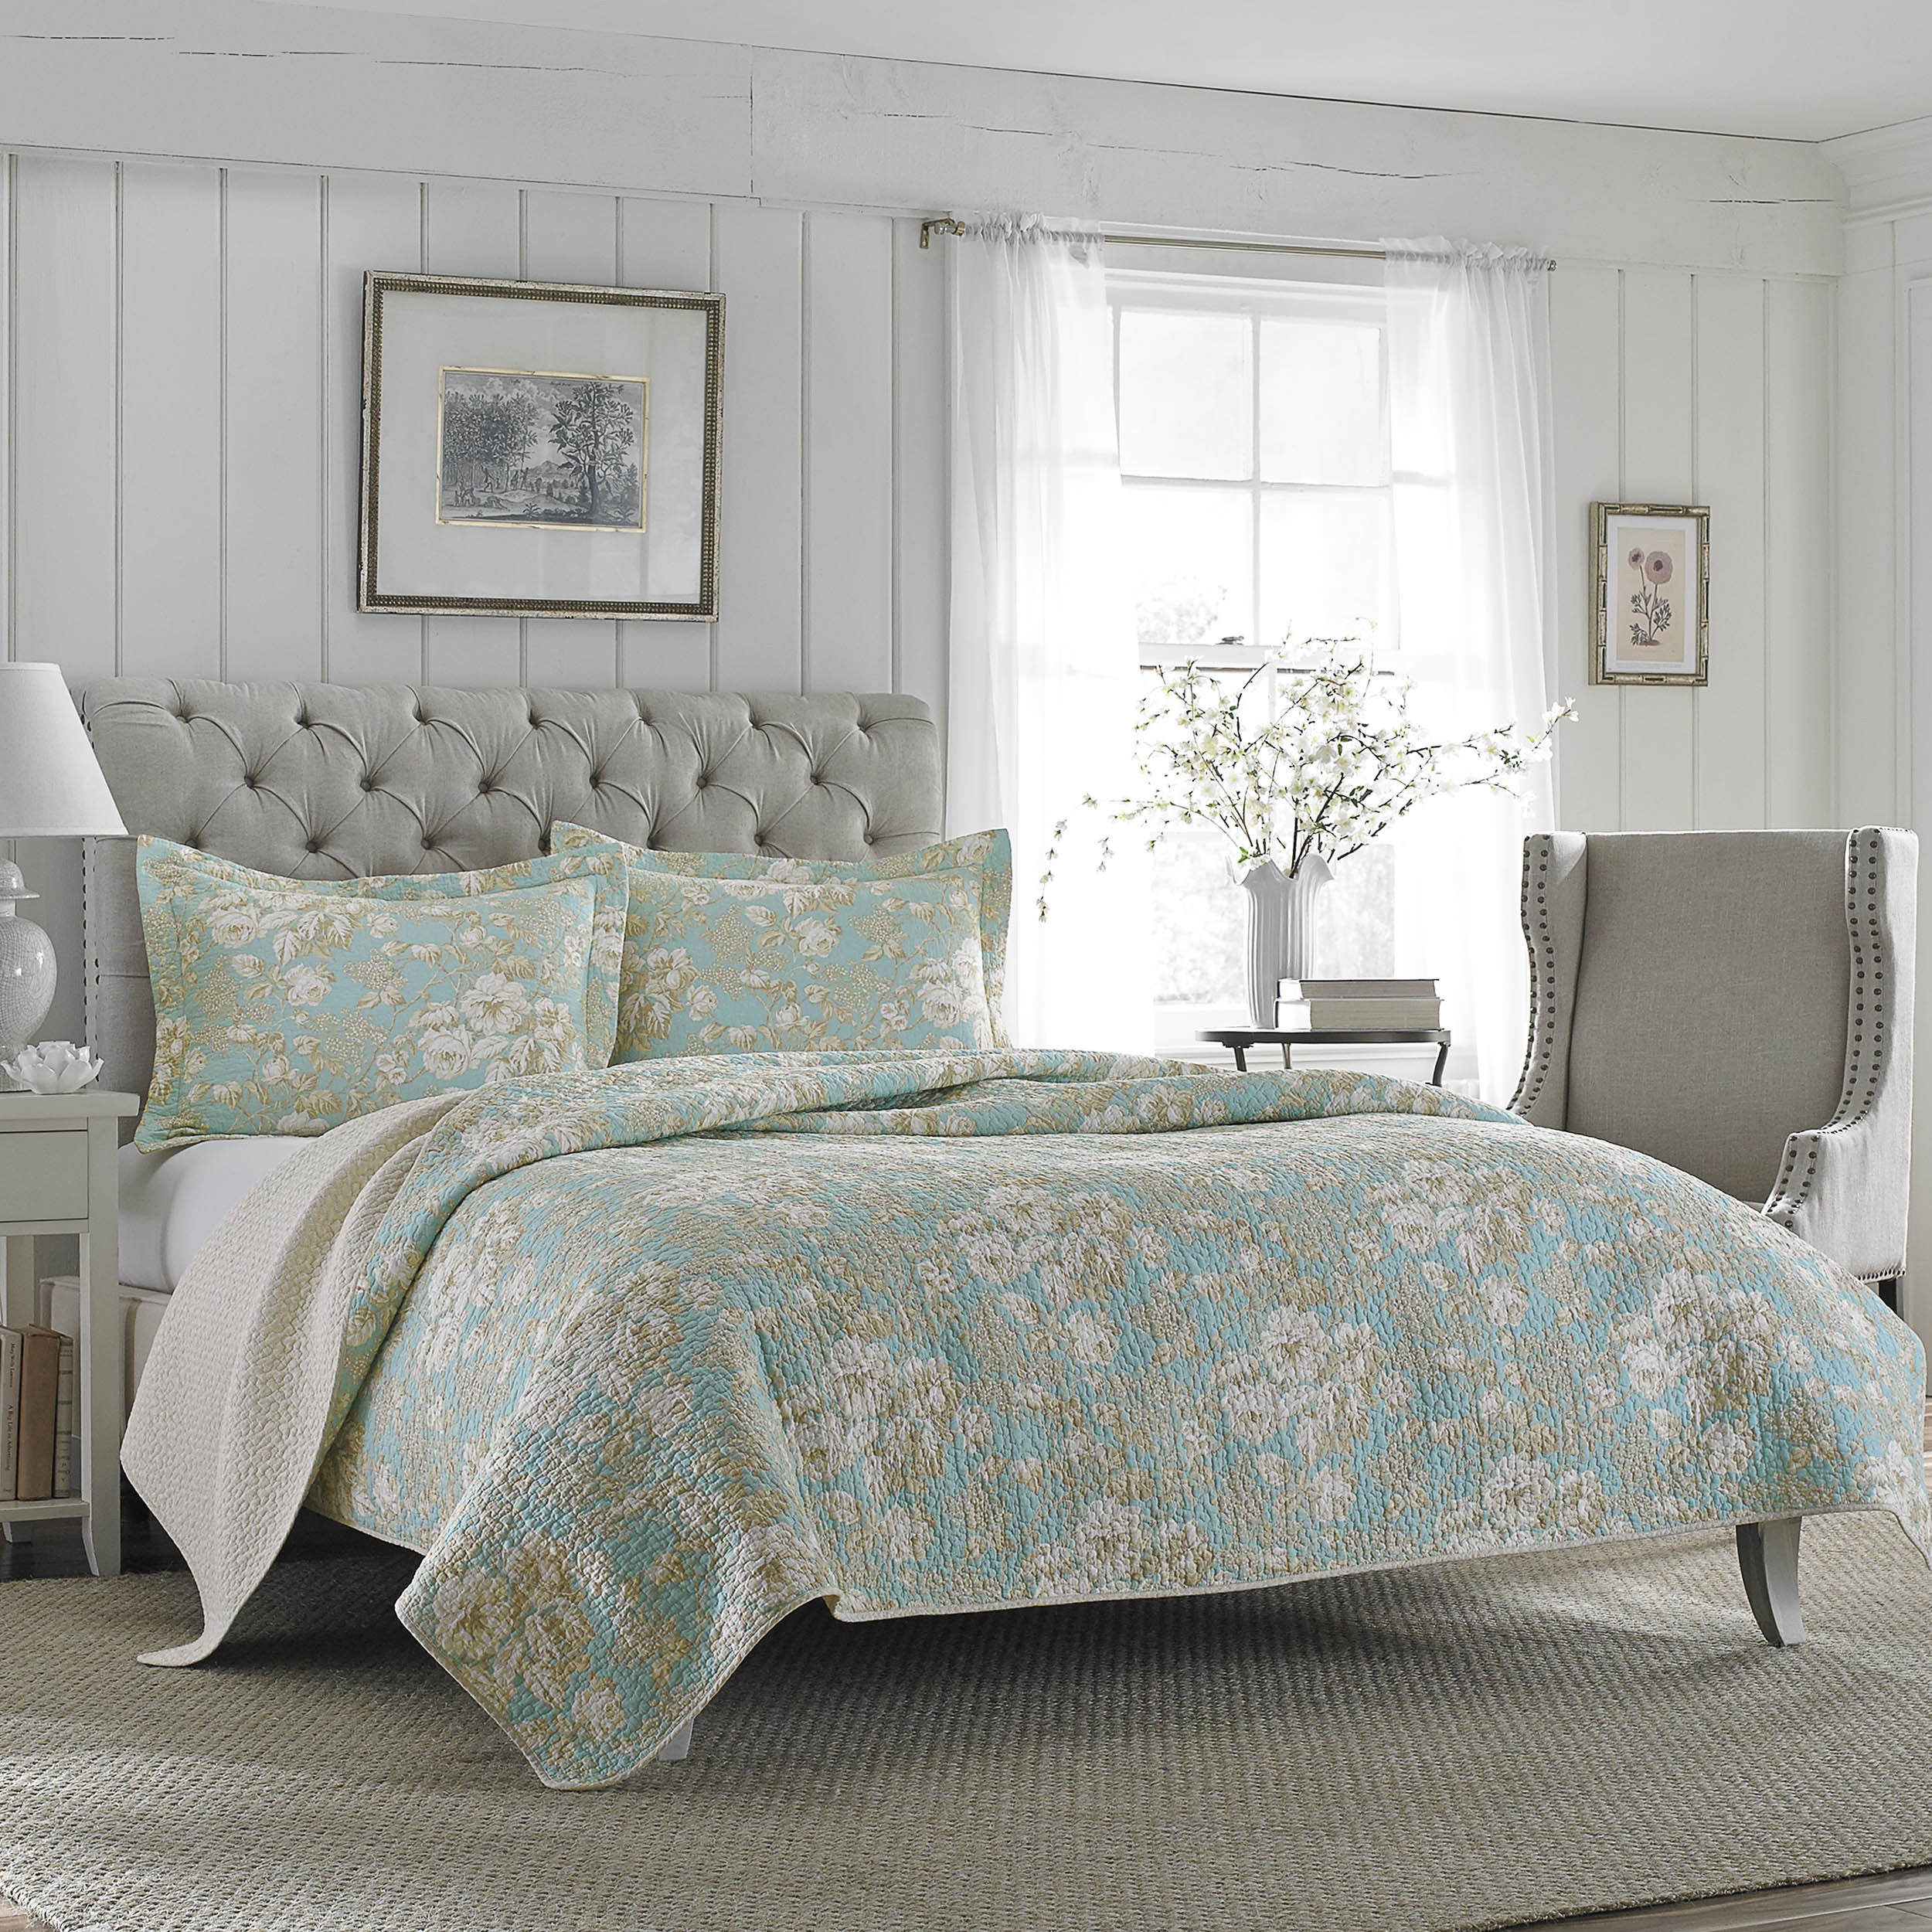 Laura Ashley Brompton Serene Reversible Cotton Quilt Set ...